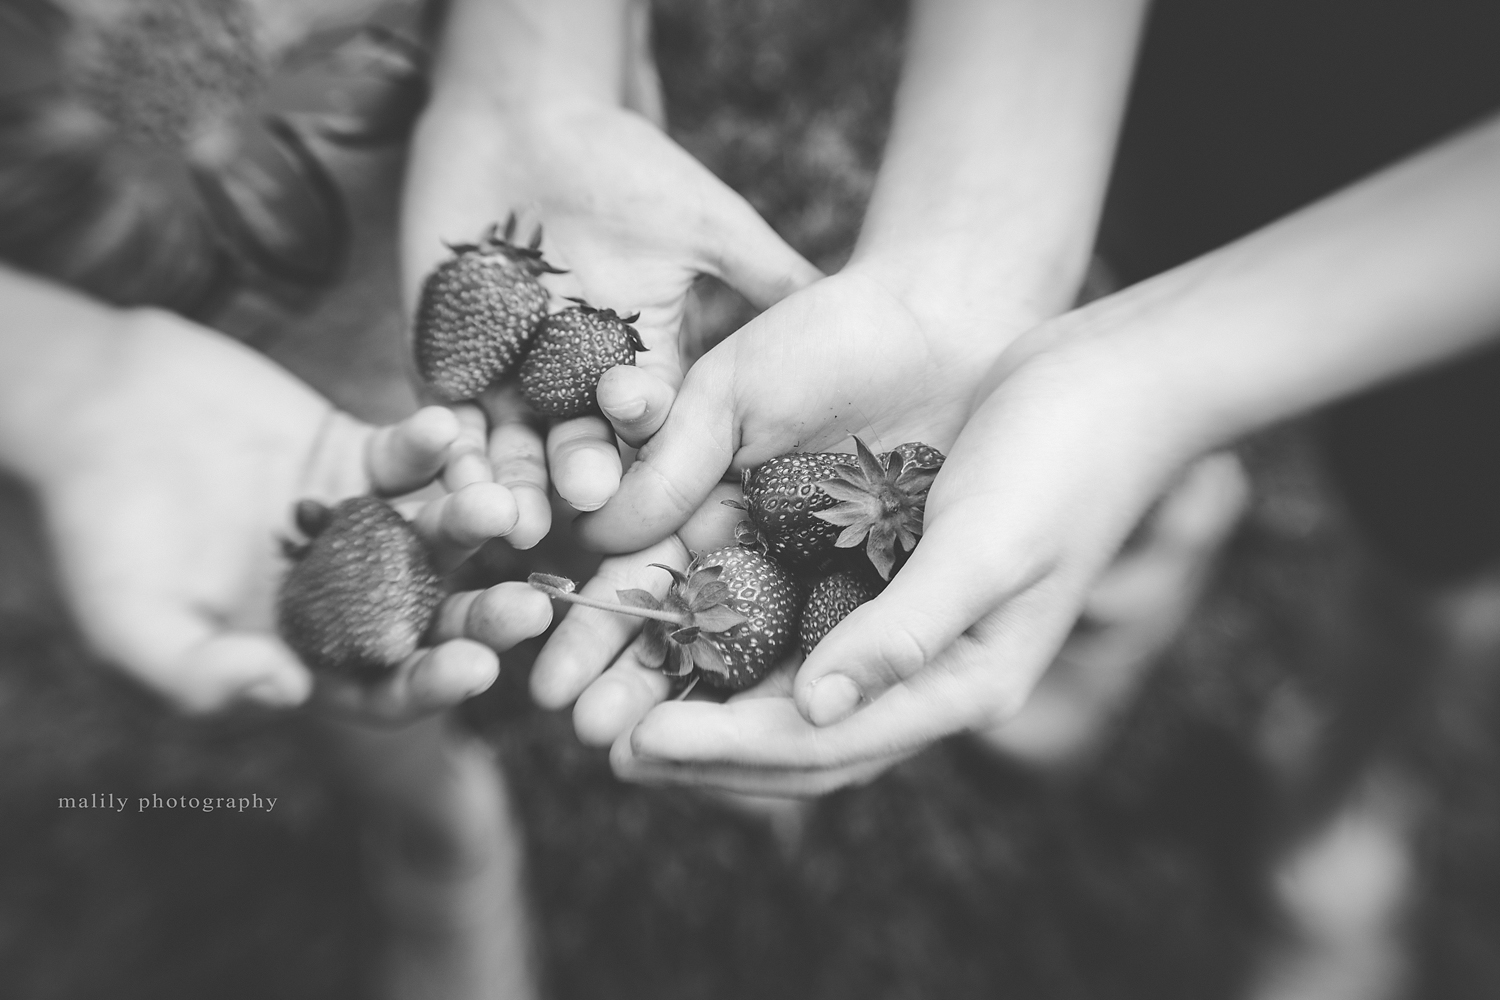 first strawberries | malily photography schuylkill haven fine art photographer